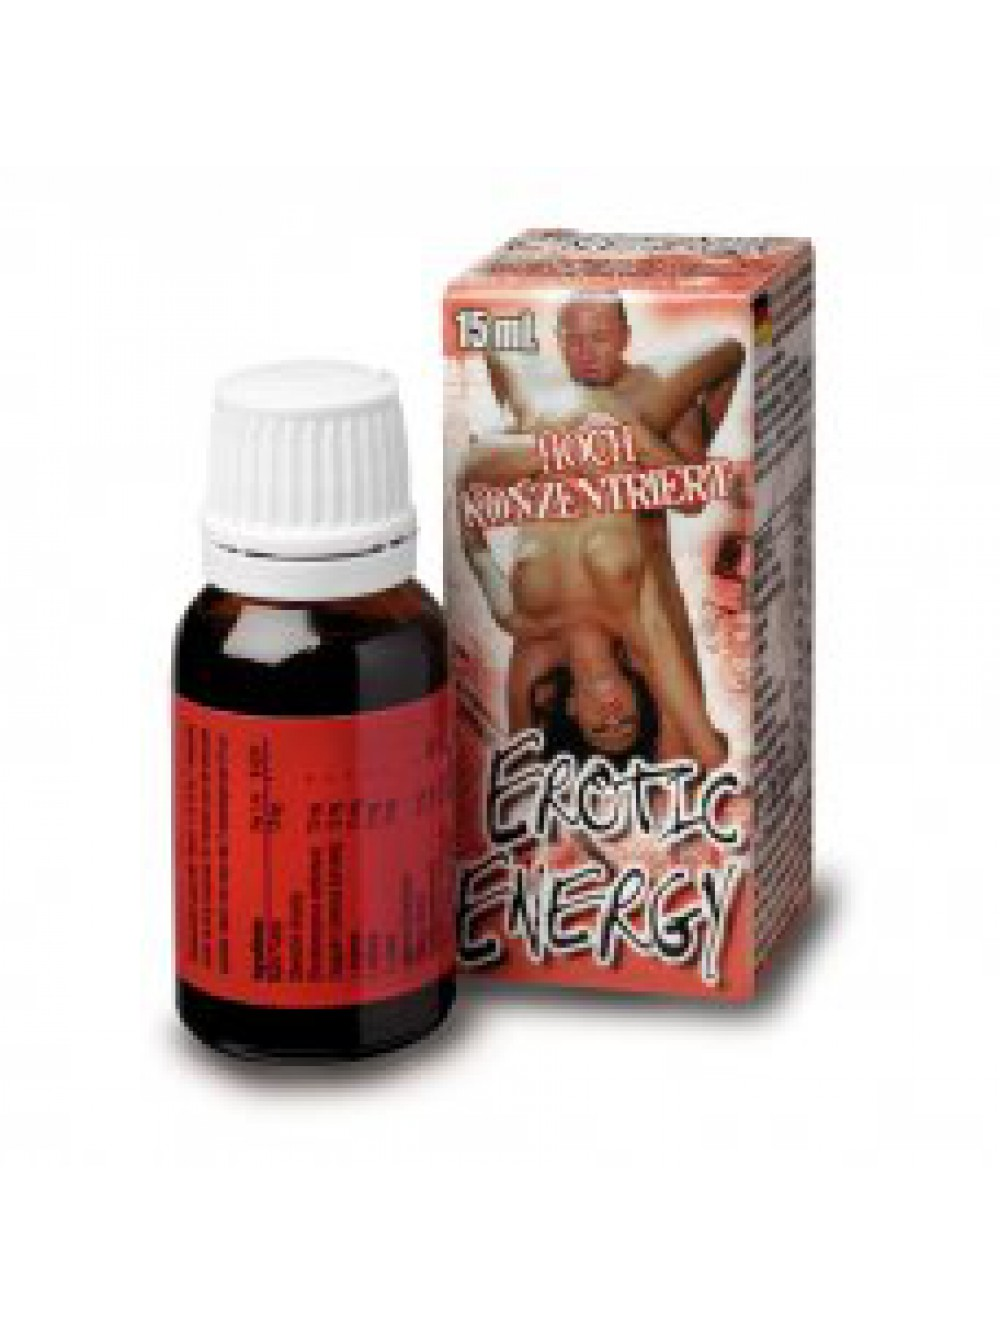 EROTIC ENERGY 15 ML 8713221158819